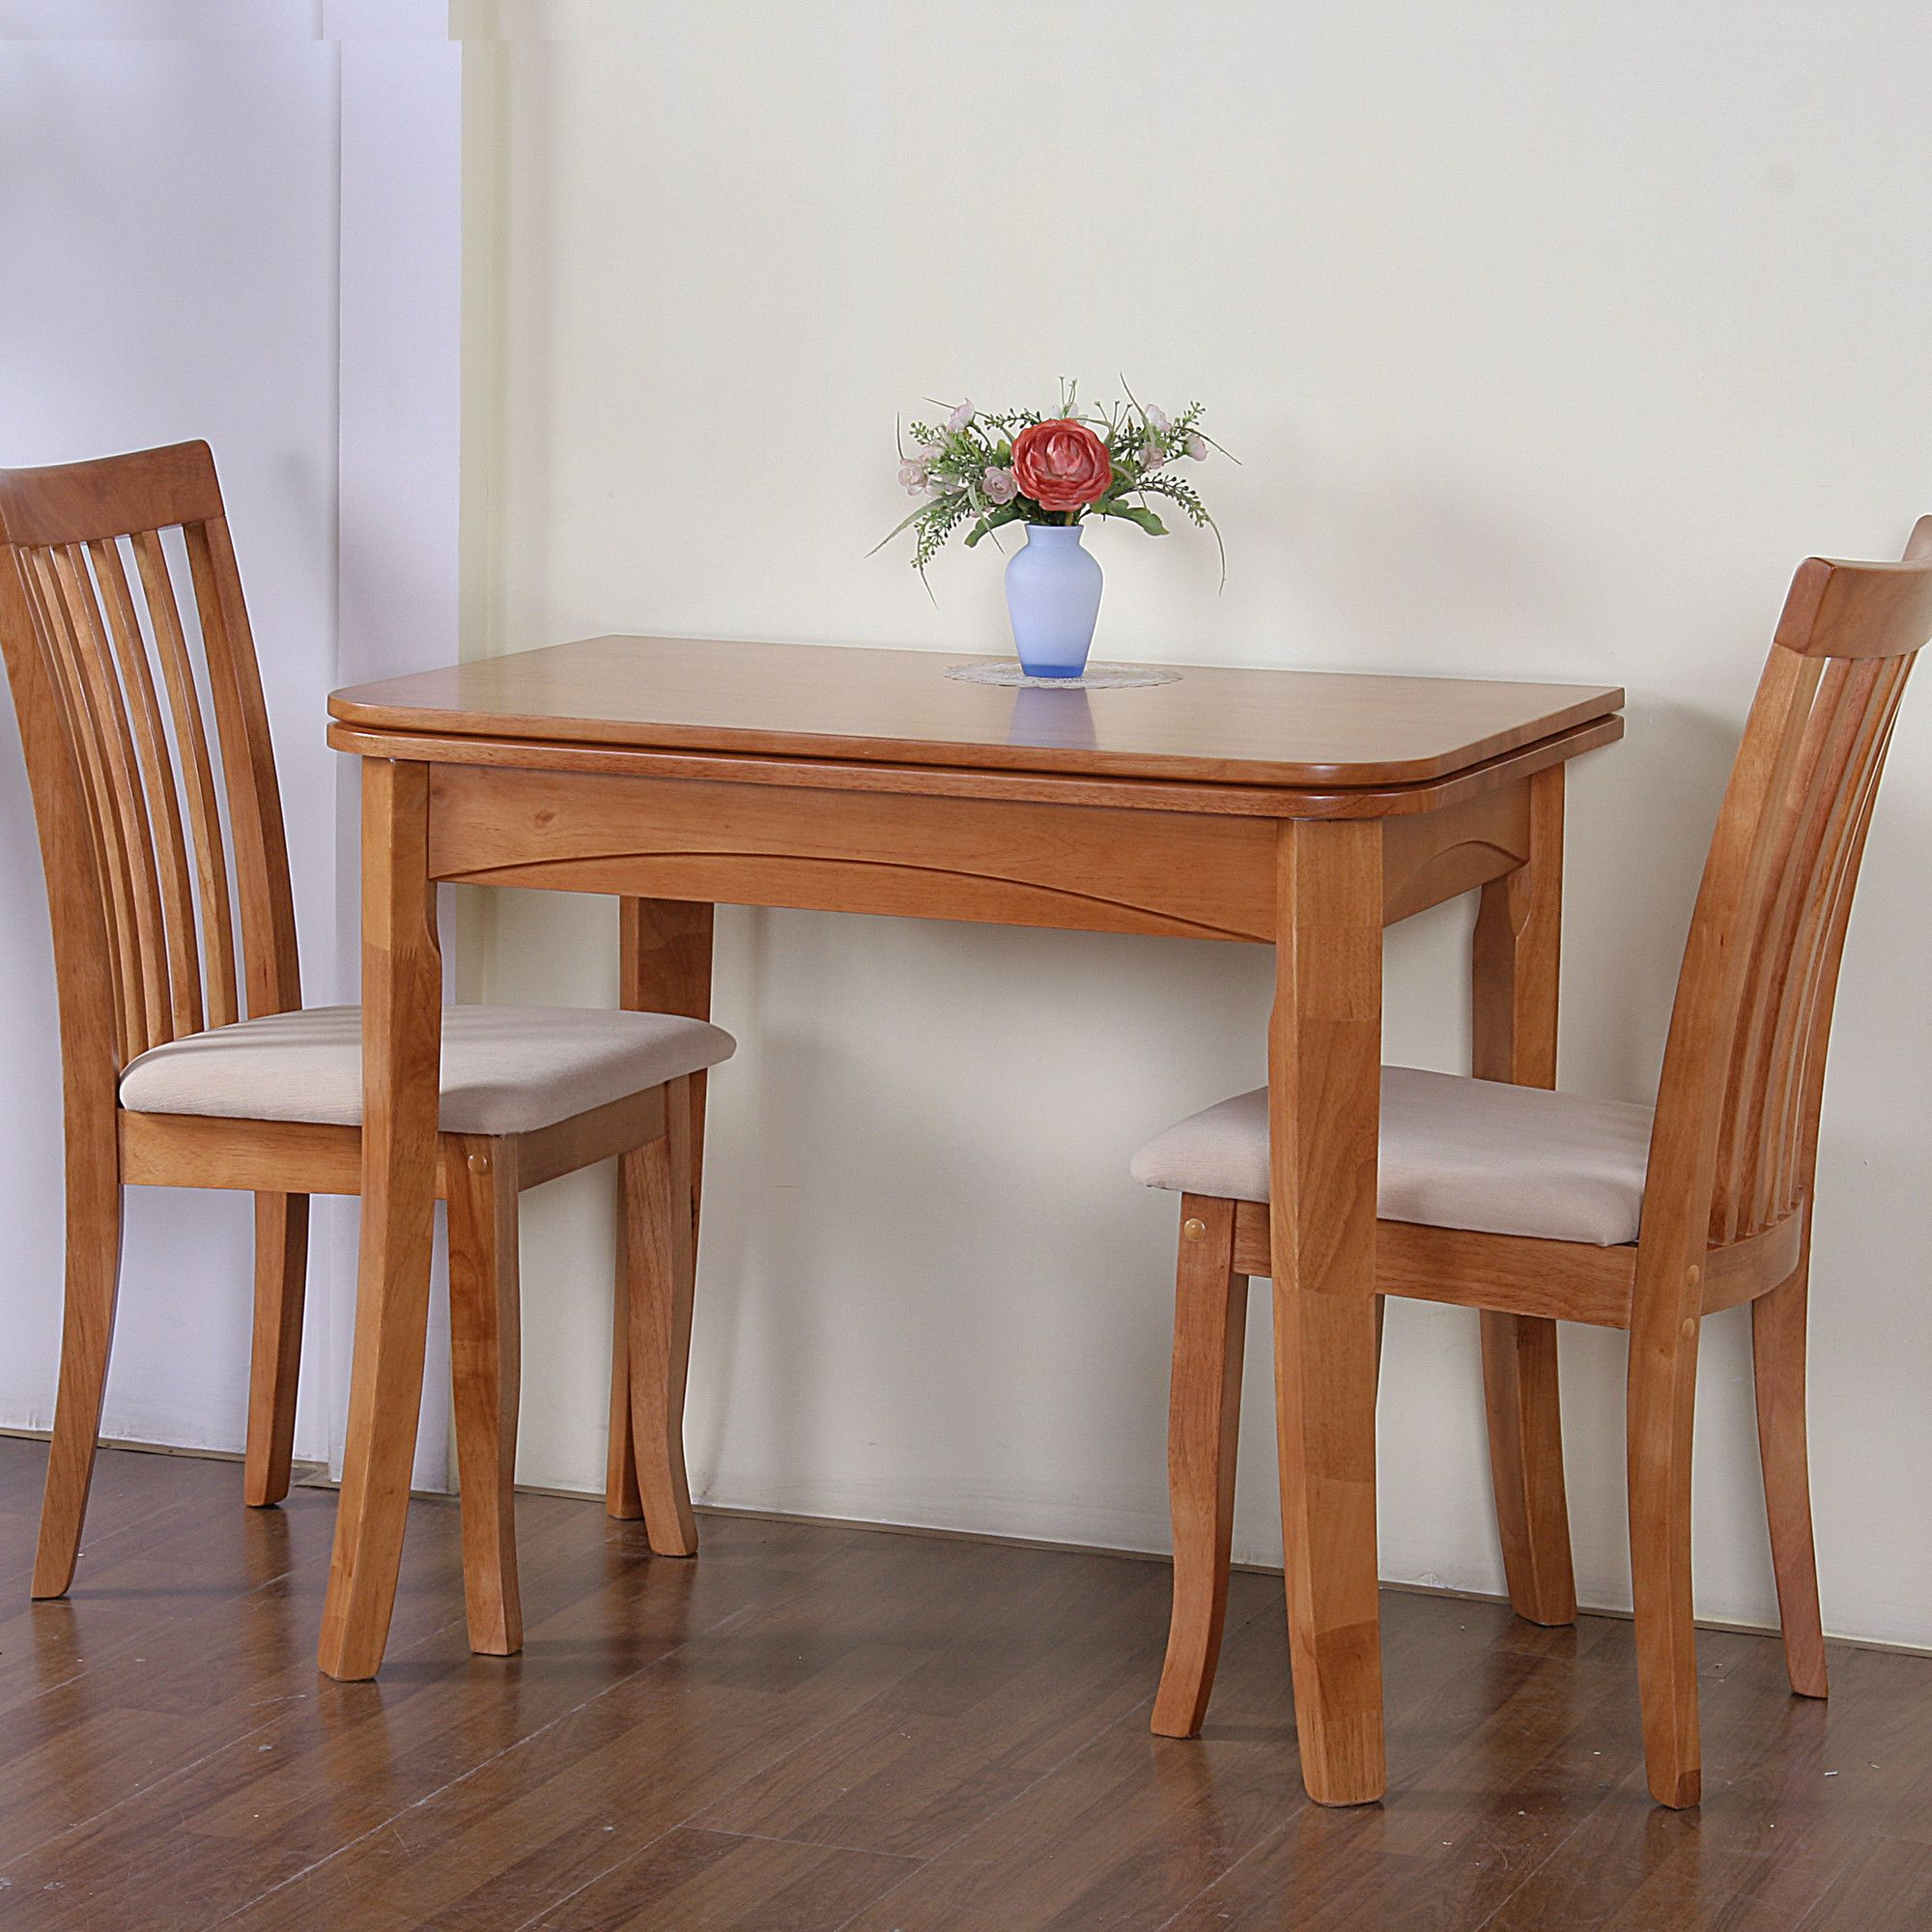 G&P Furniture Windsor House 3-Piece Newark Flip Top Dining Set - Maple at Tescos Direct